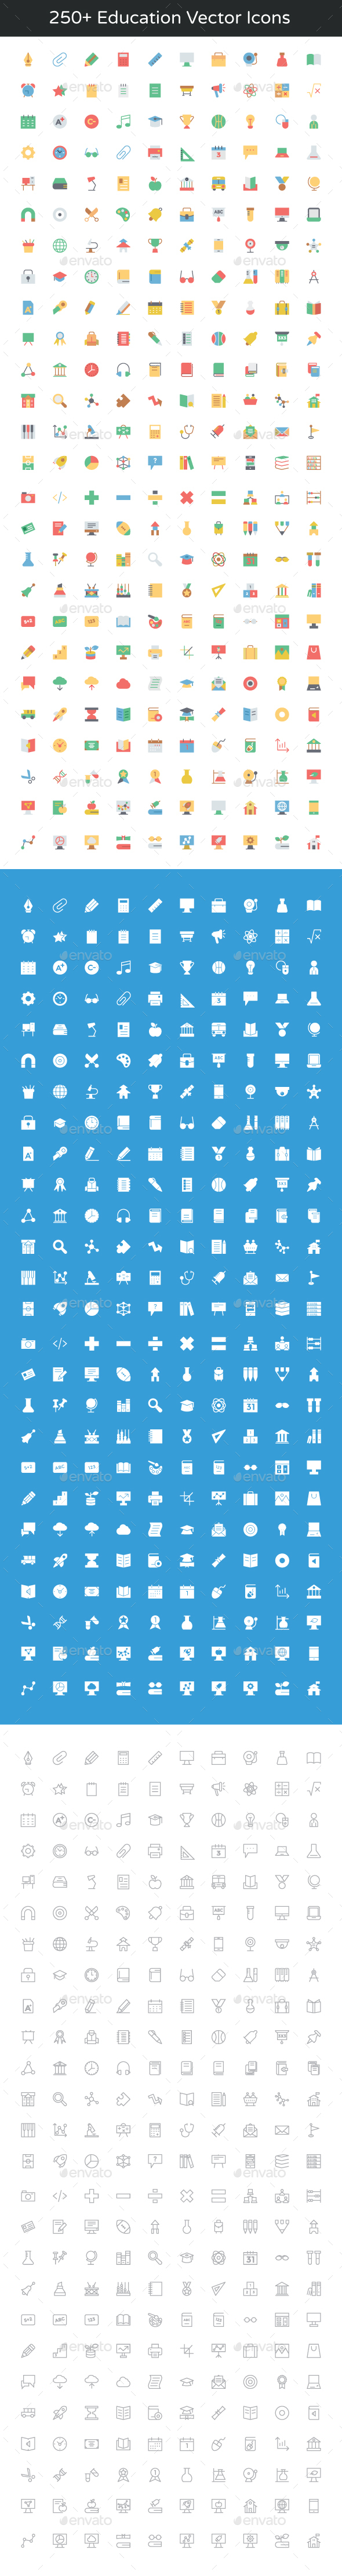 250+ Education Vector Icons - Icons